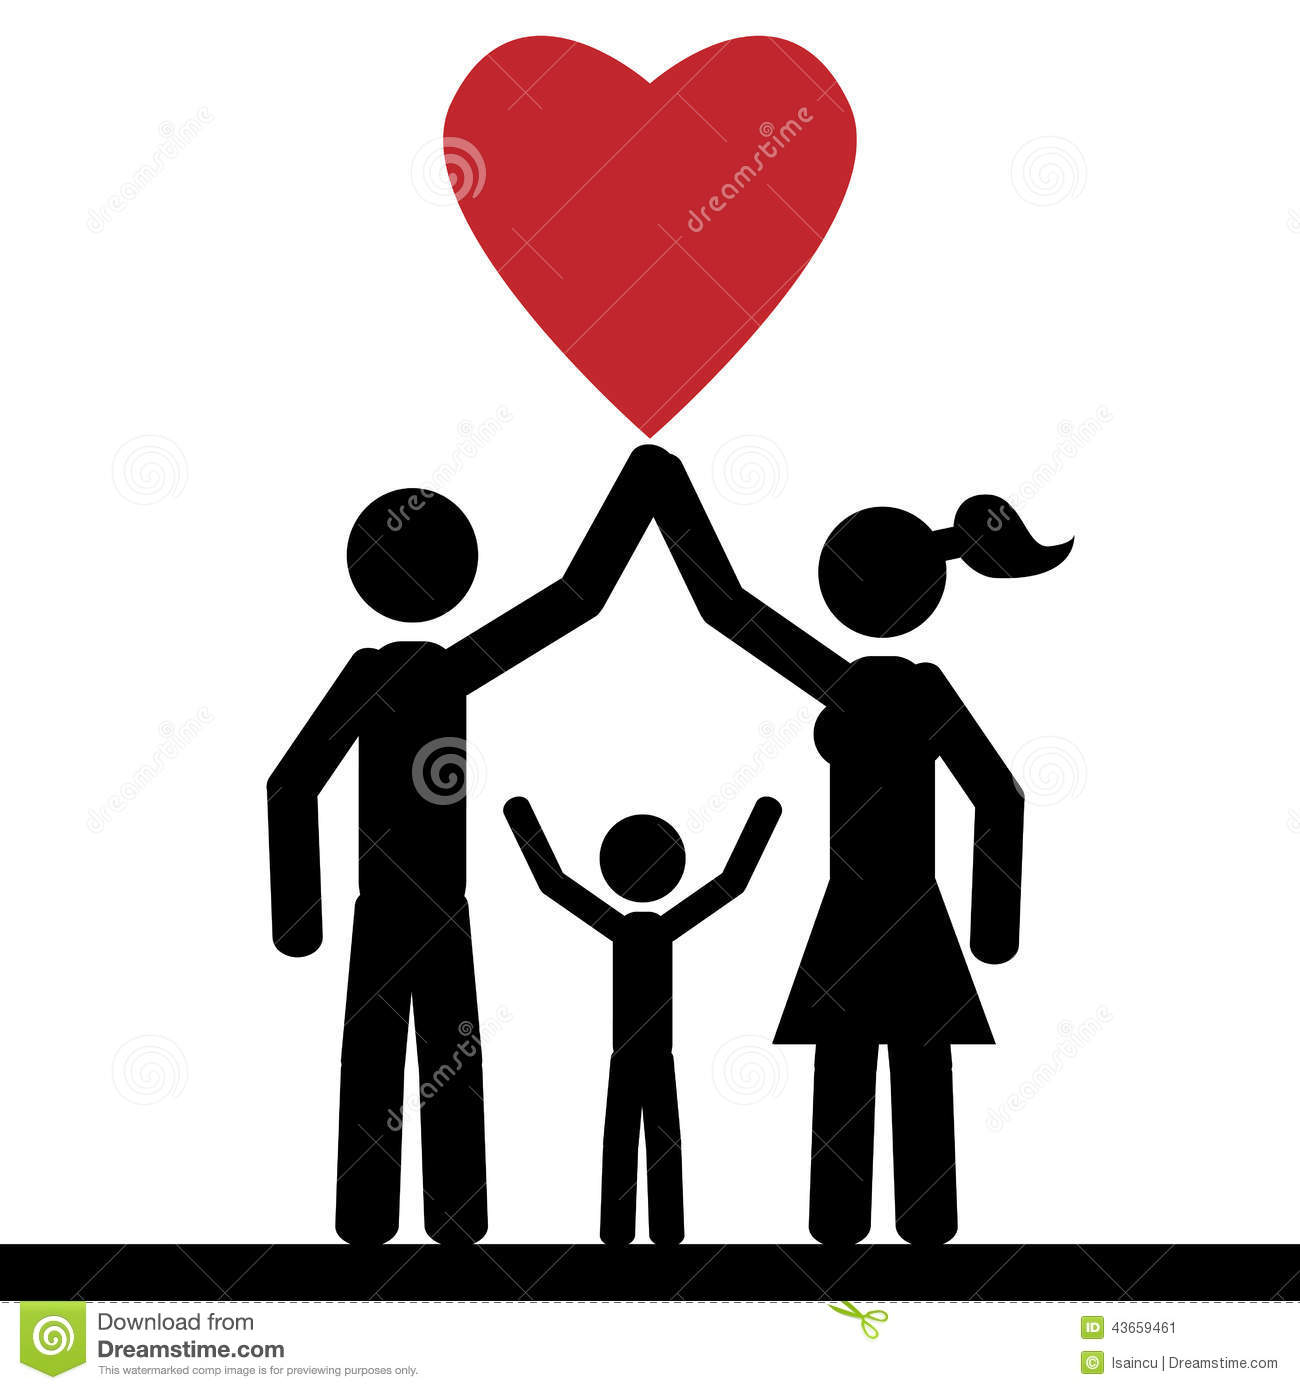 Love and family clipart image library download Family love clipart - ClipartFest image library download